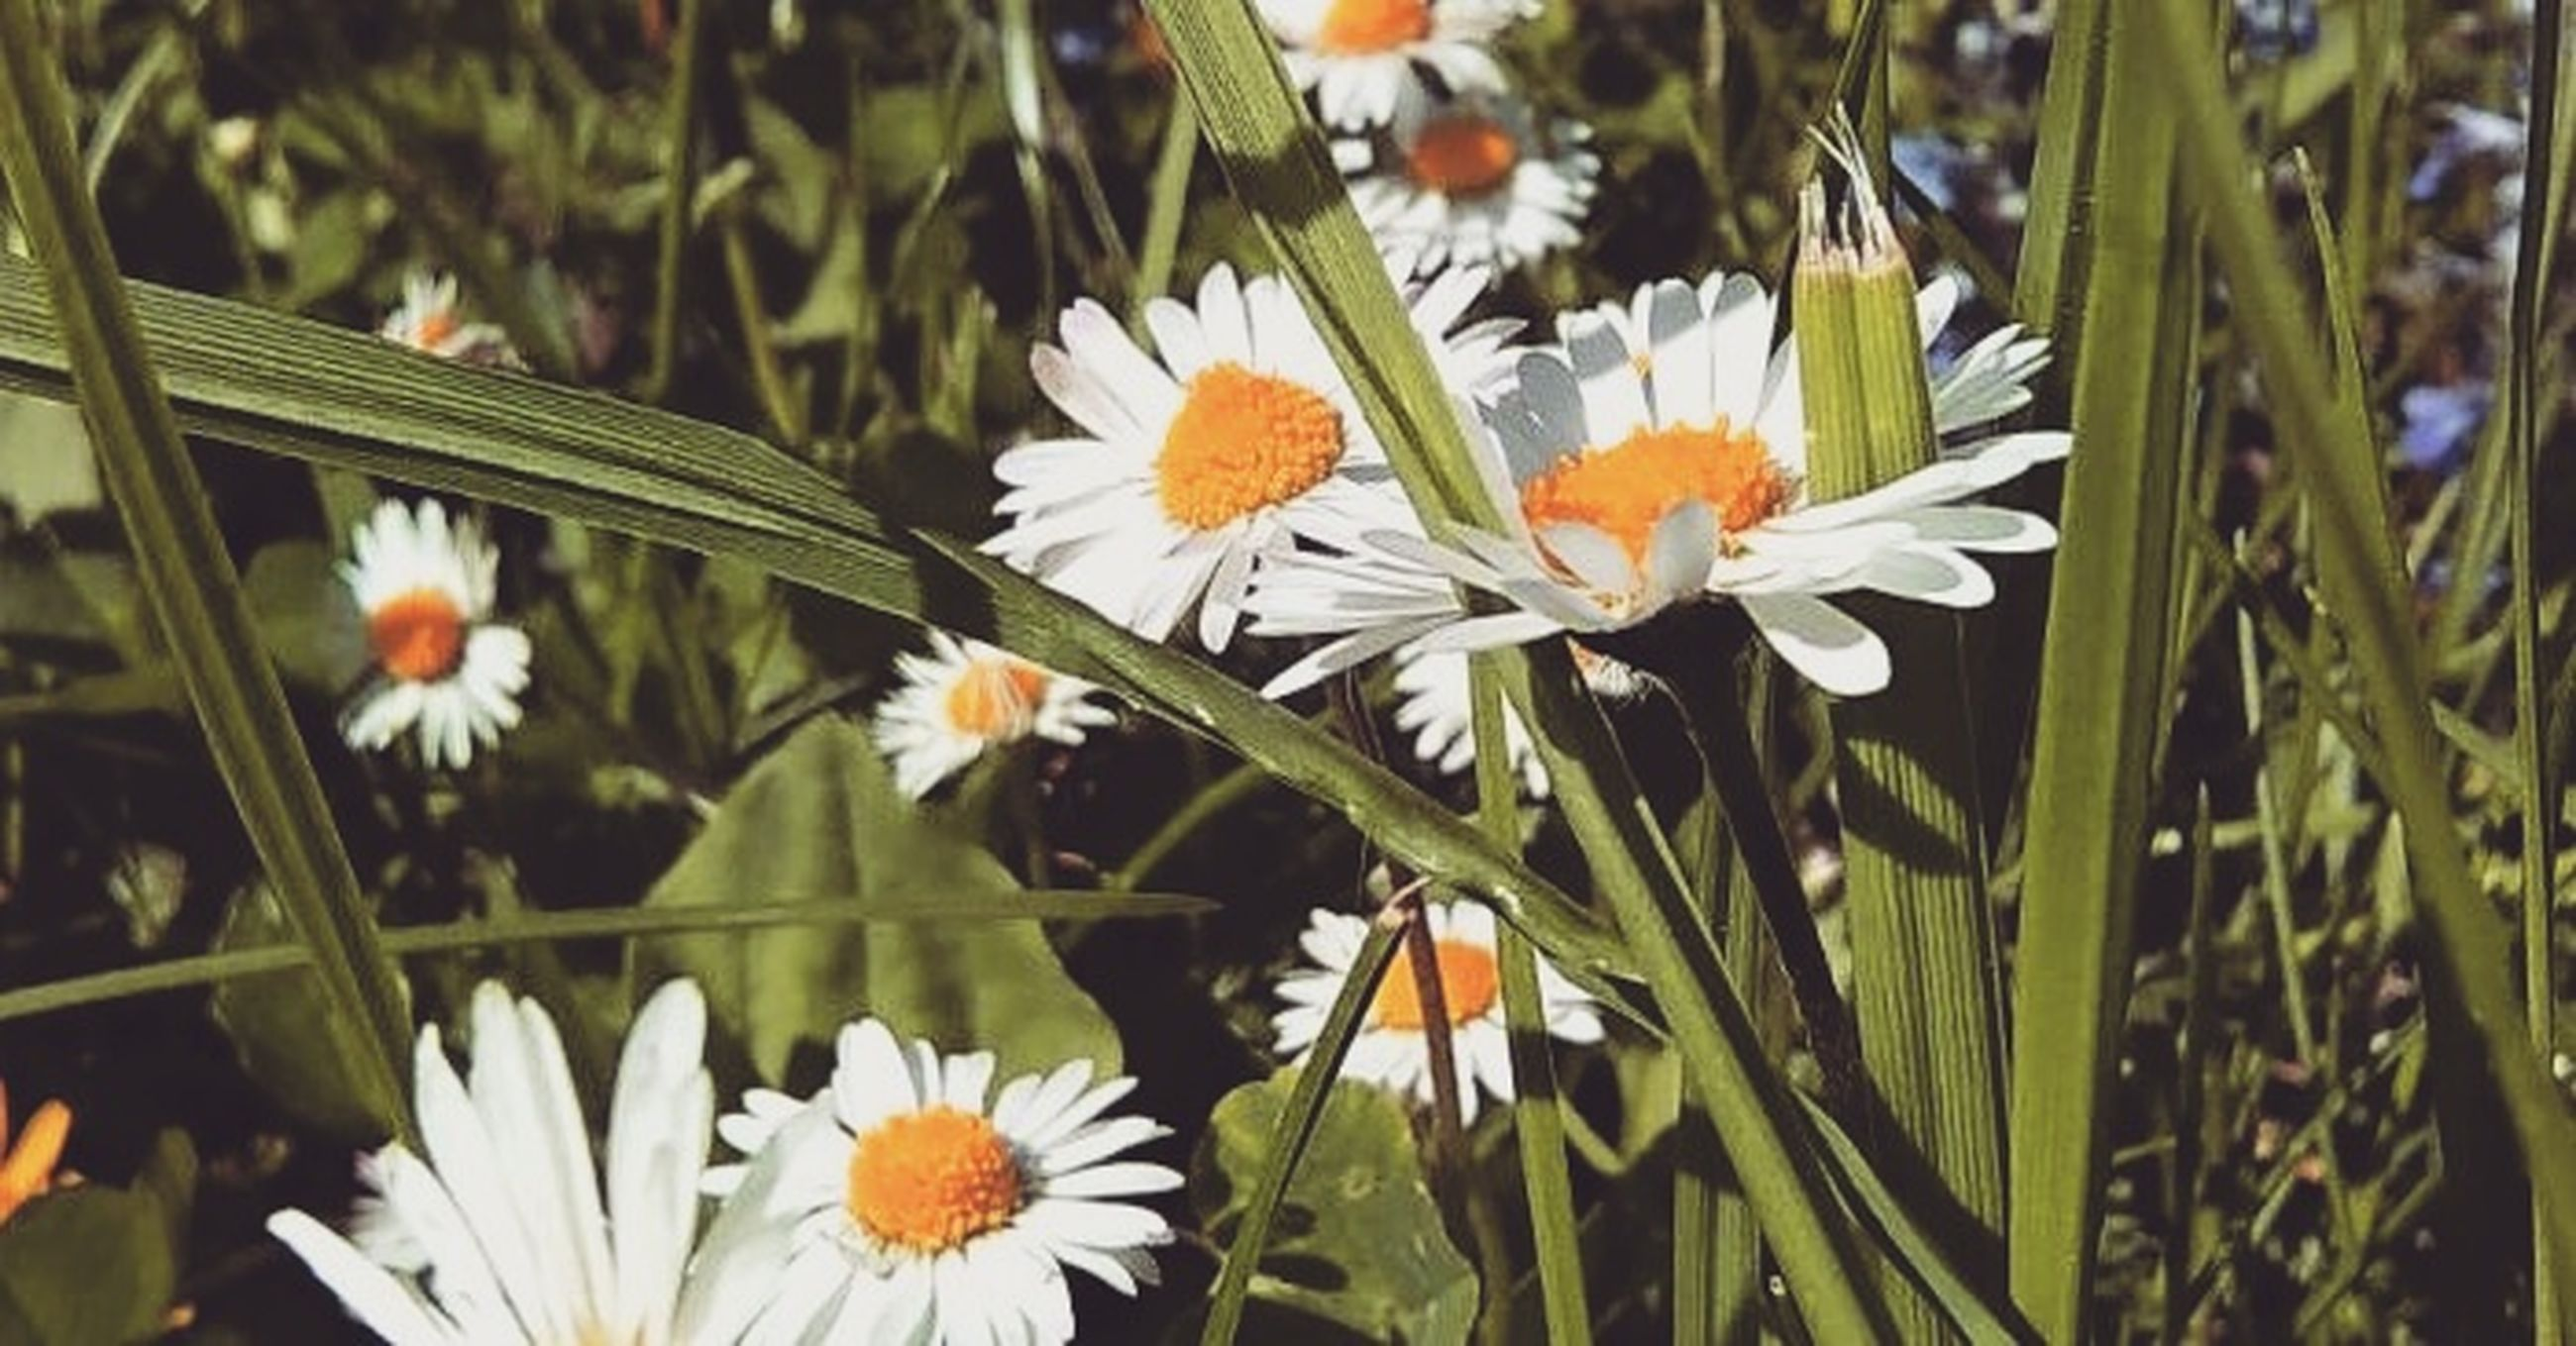 flower, fragility, nature, beauty in nature, freshness, growth, petal, plant, blooming, flower head, no people, green color, outdoors, day, close-up